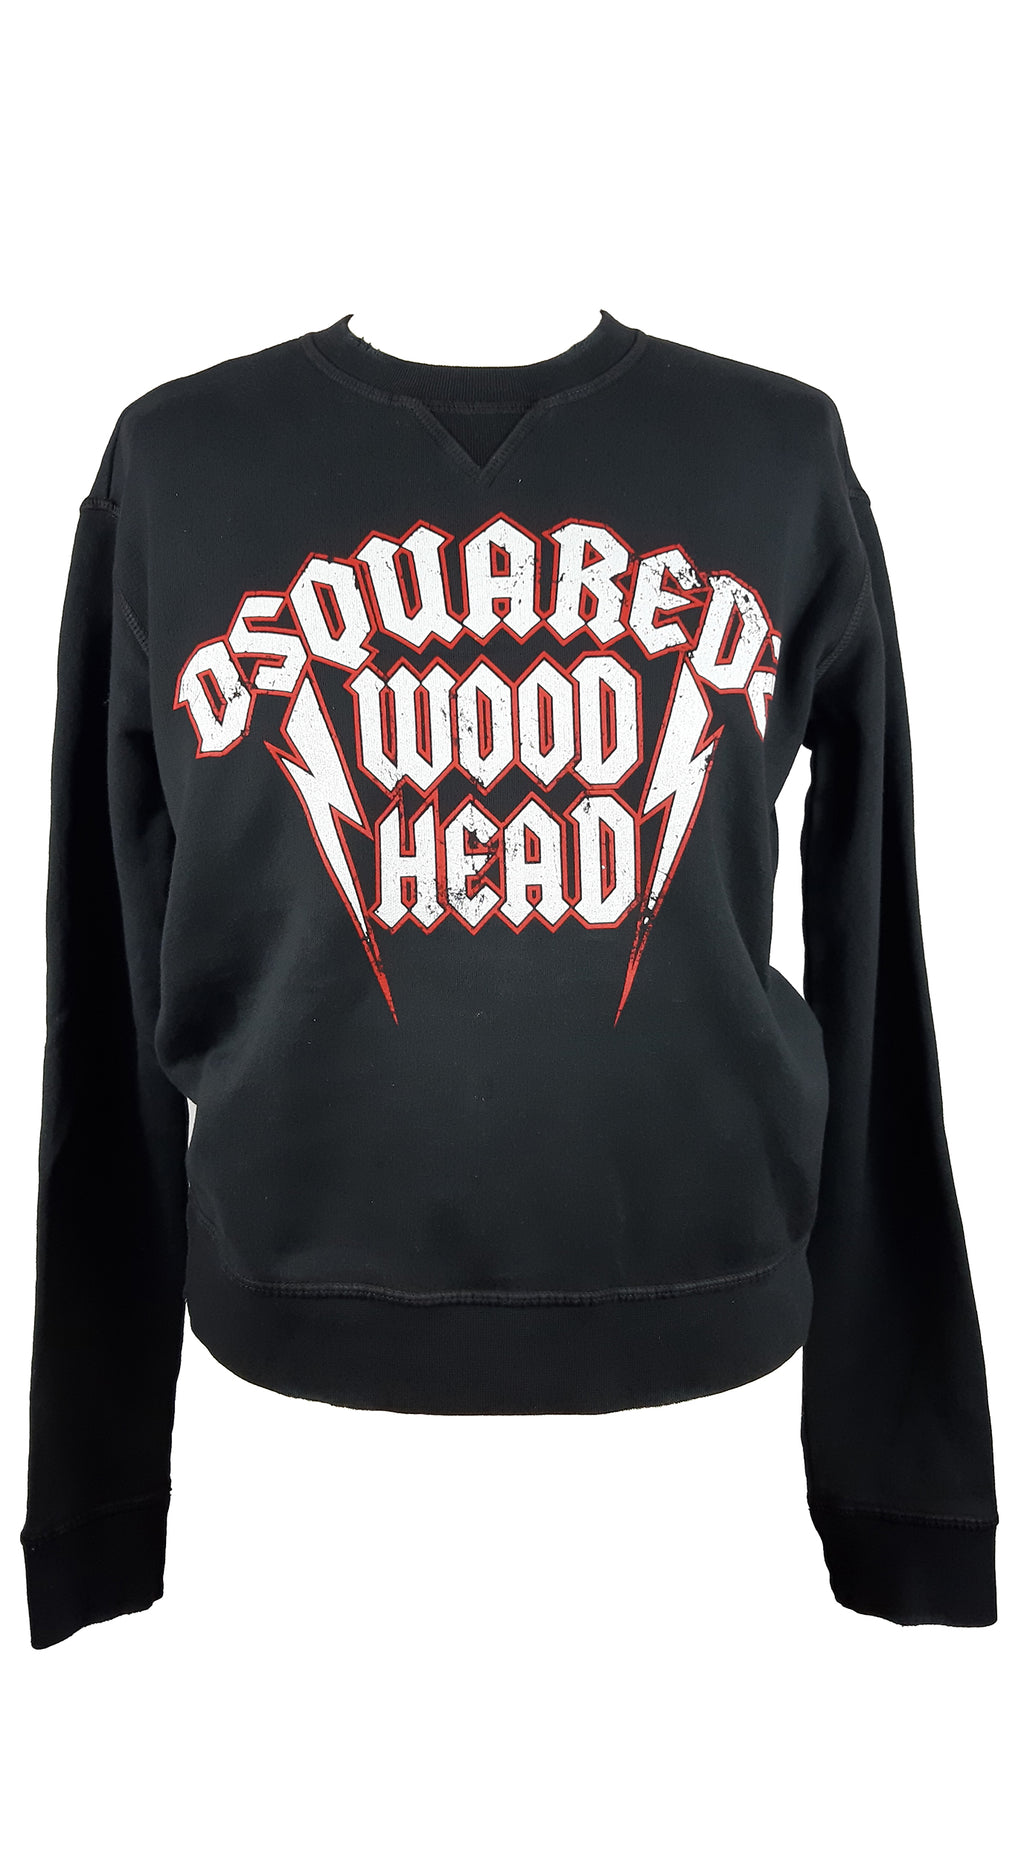 Dsquared2 Black Sweatshirt with White and Red Letters Size XS (INT)